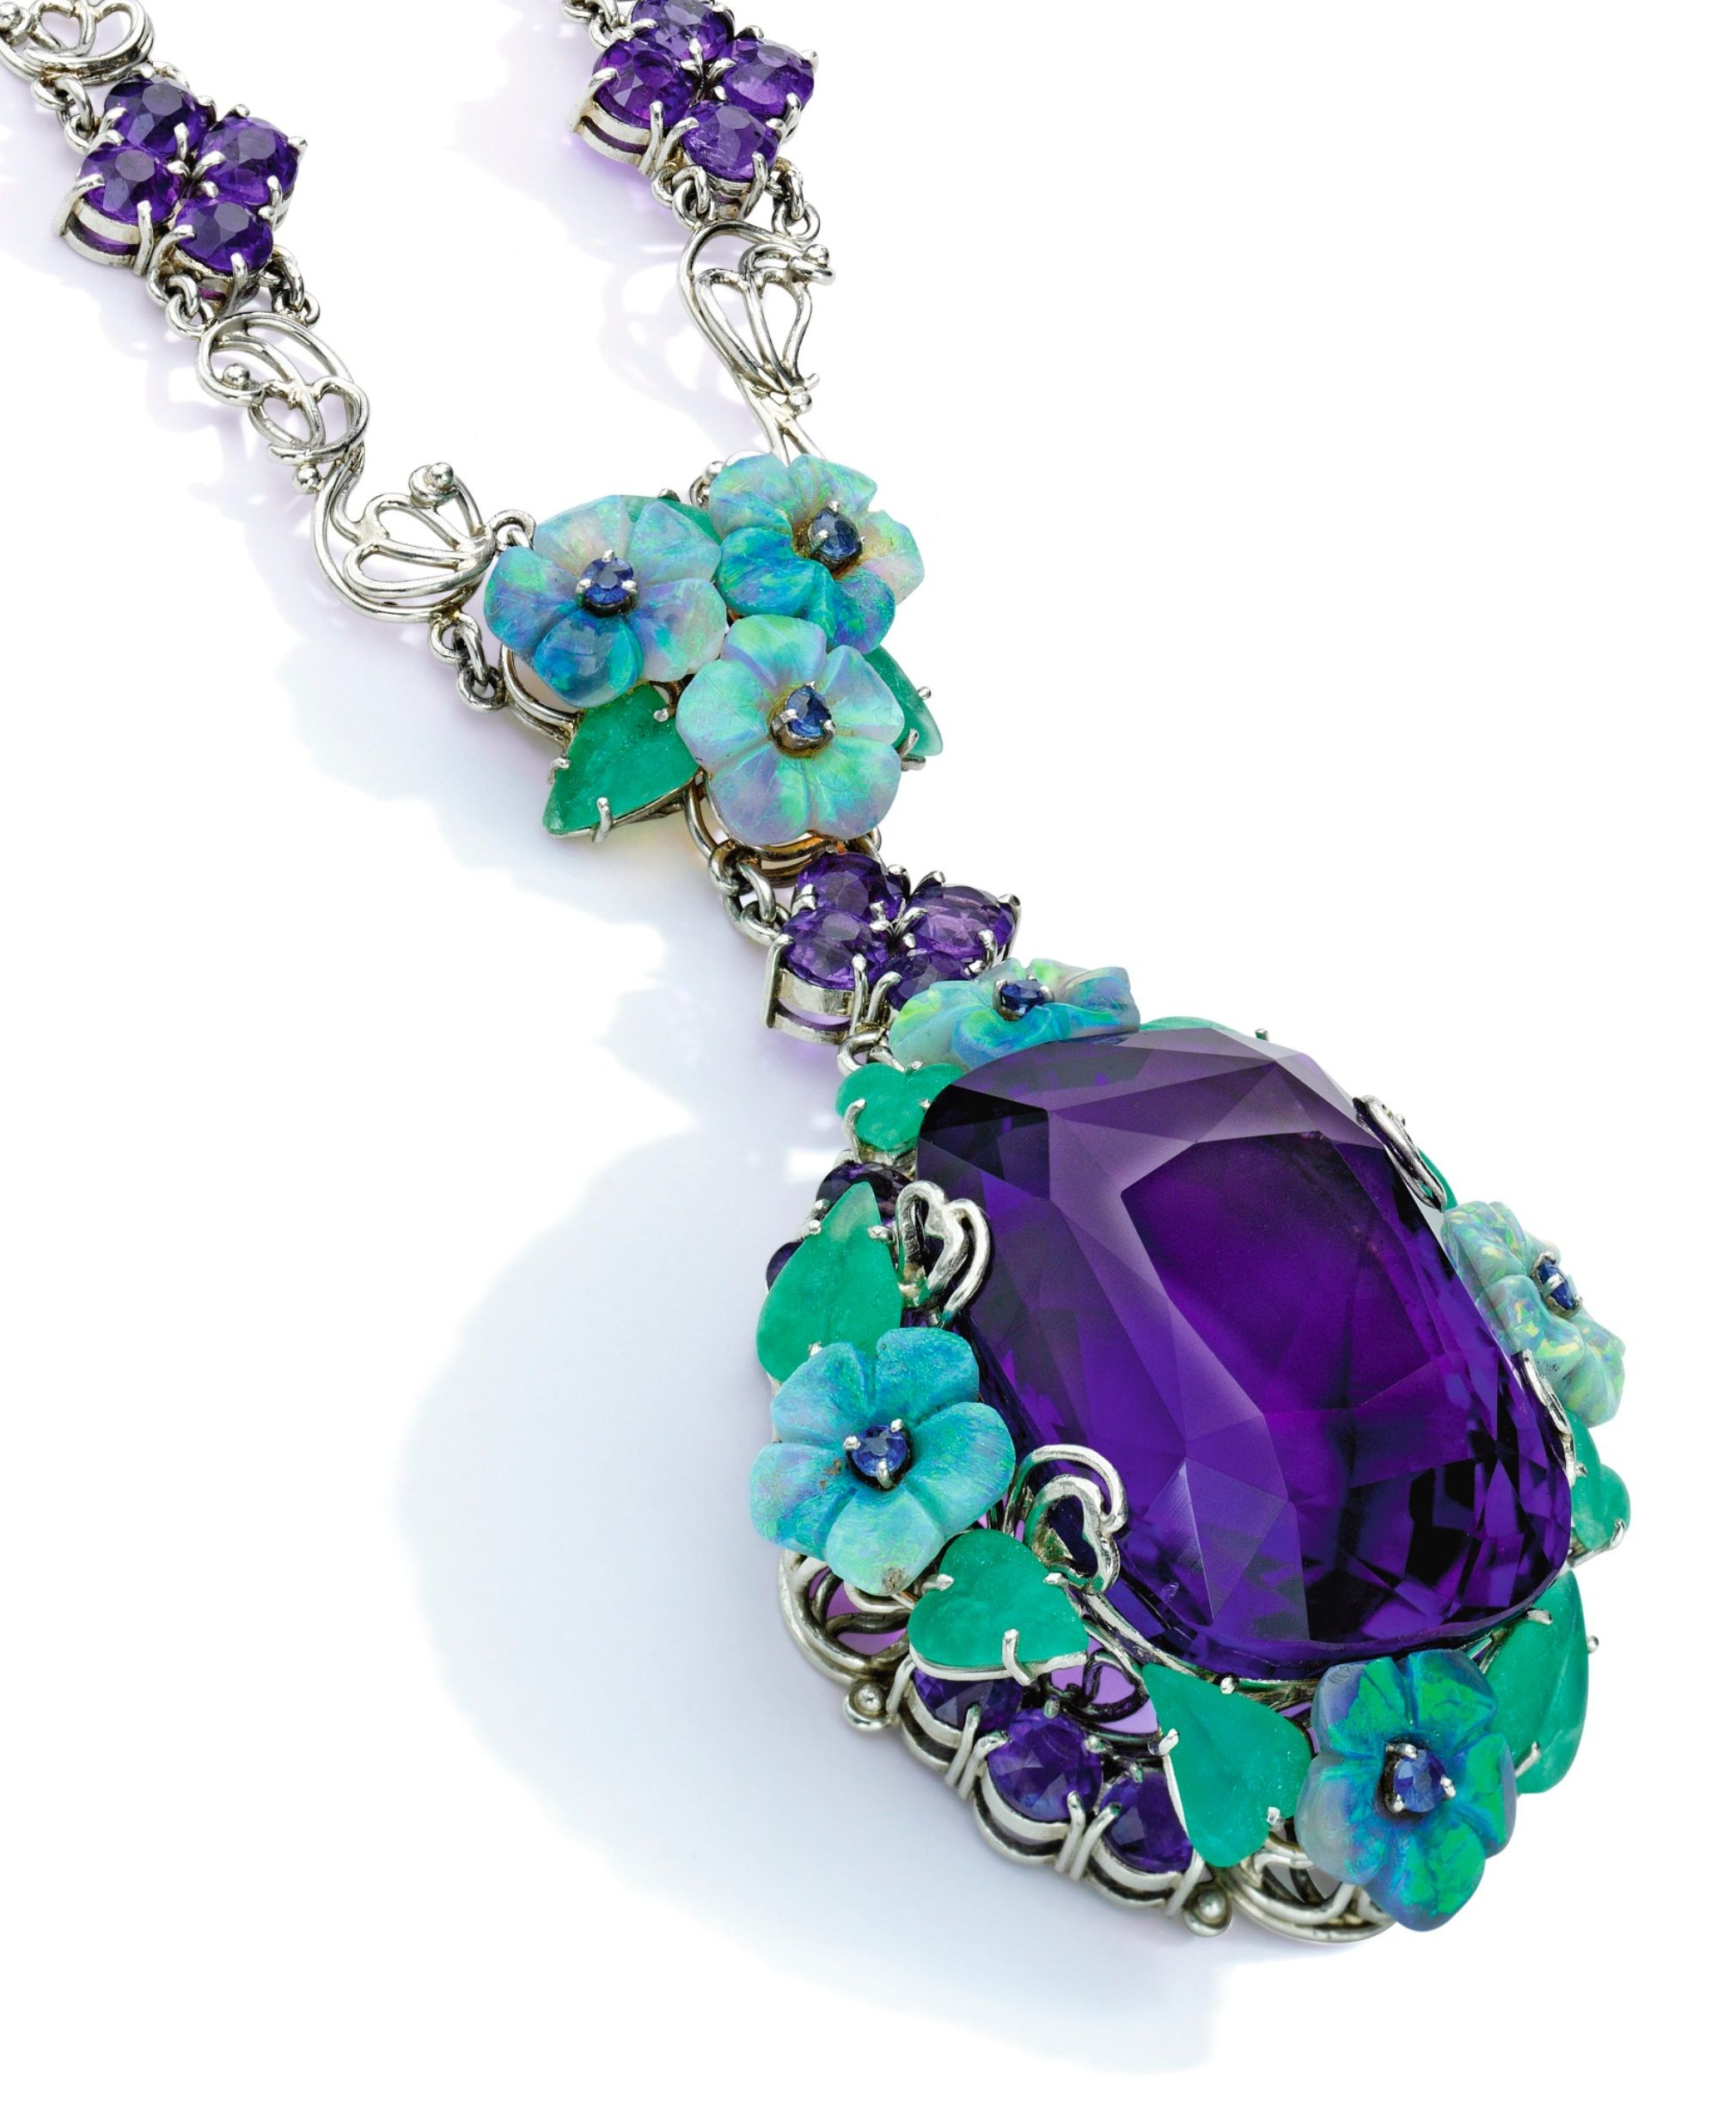 Louis Comfort Tiffany For Tiffany Co An Arts And Crafts Amethyst Opal Sapphire And Green Hardstone Pendant Necklace Circa 1920 Supporting A Penda Jewels